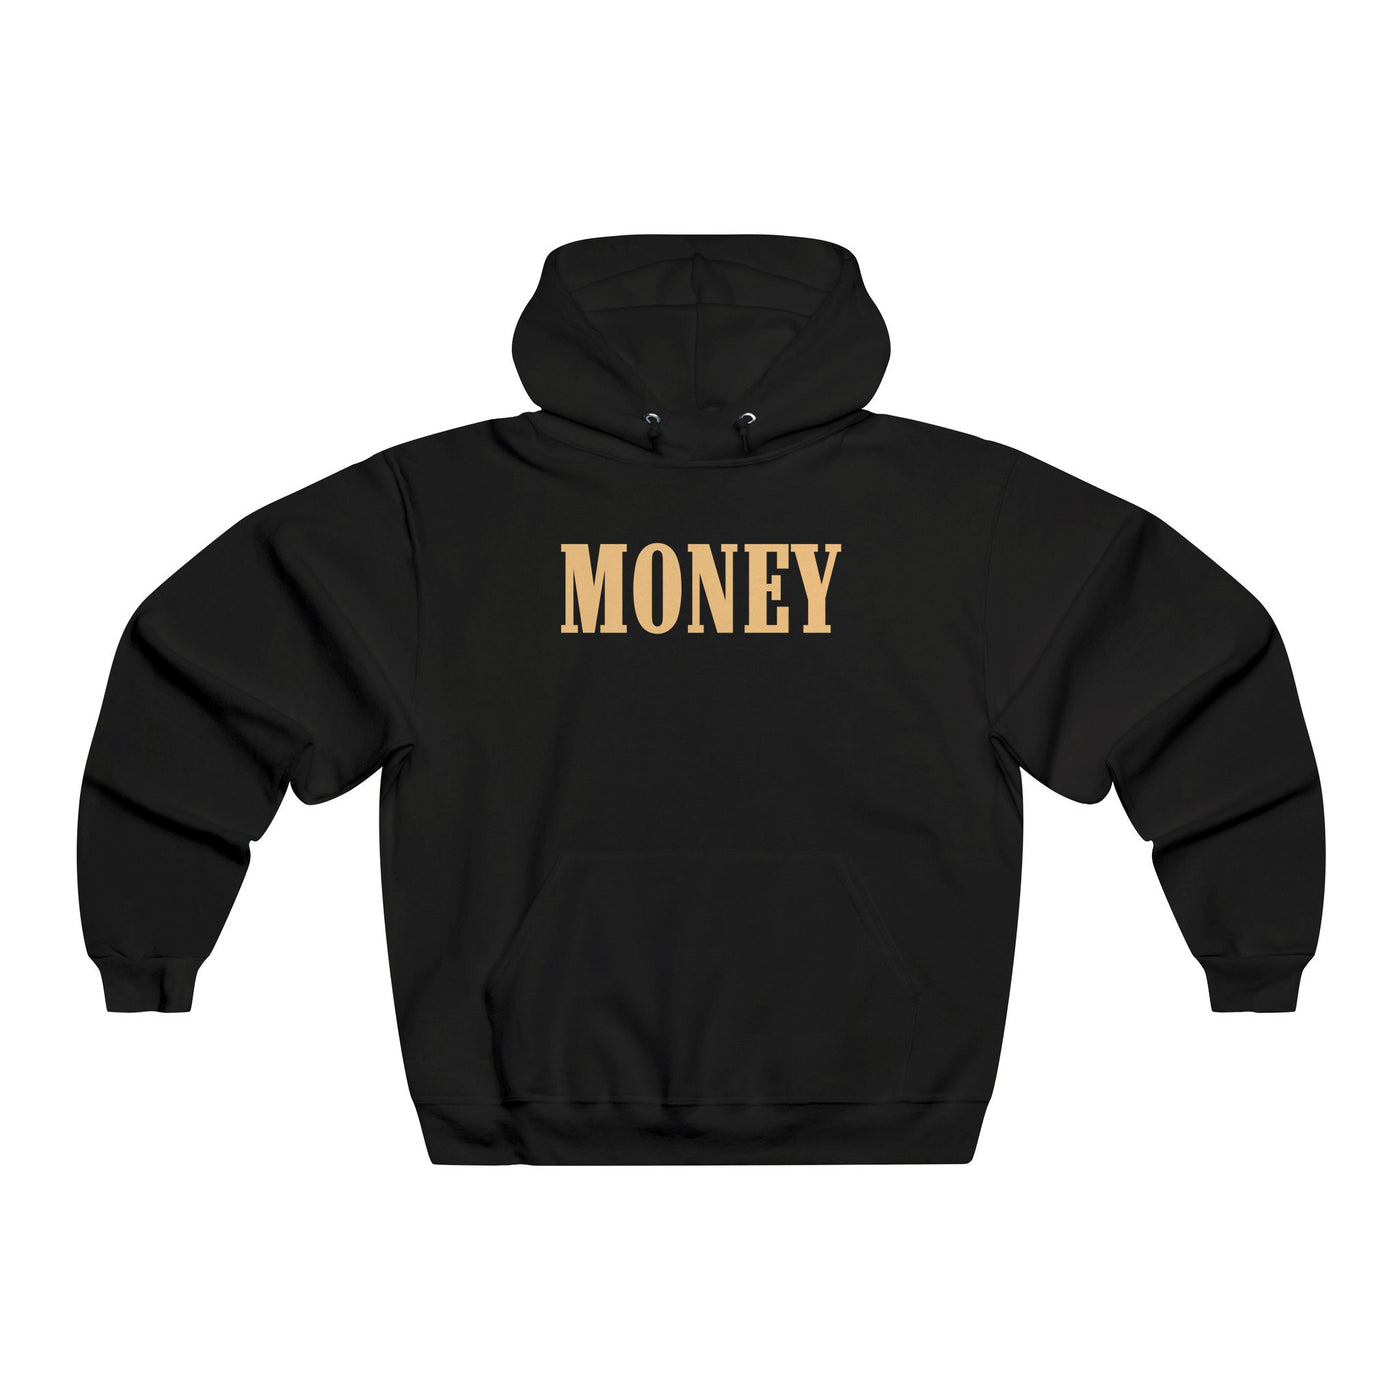 Money Fleece - Black - Modern Appeal